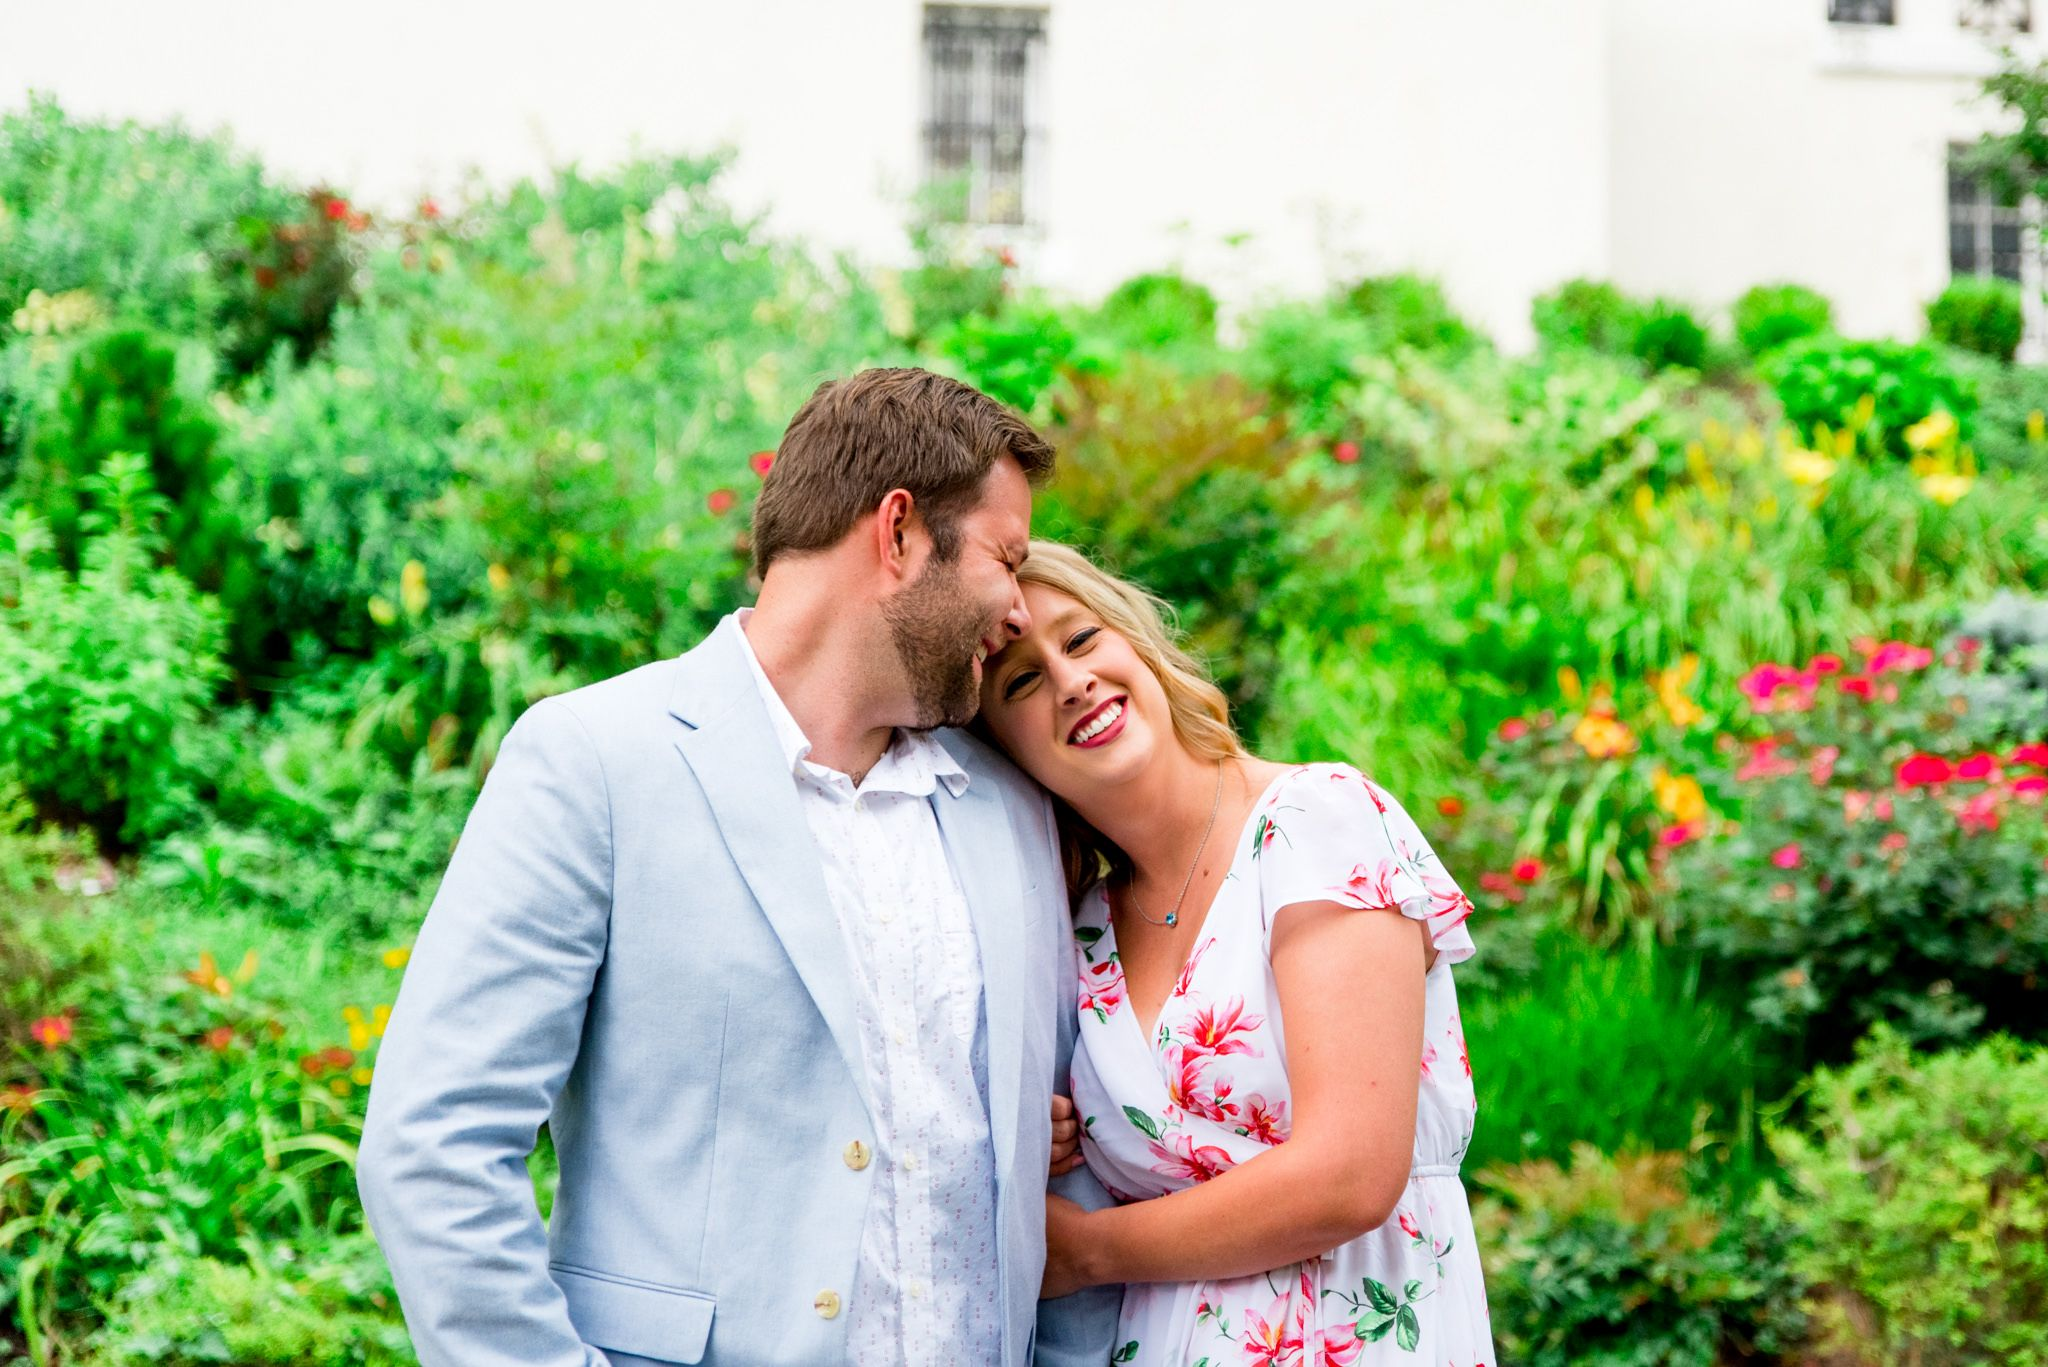 blonde woman hugging arm of man with short brown hair on a rainy day in Louisville for engagement pictures